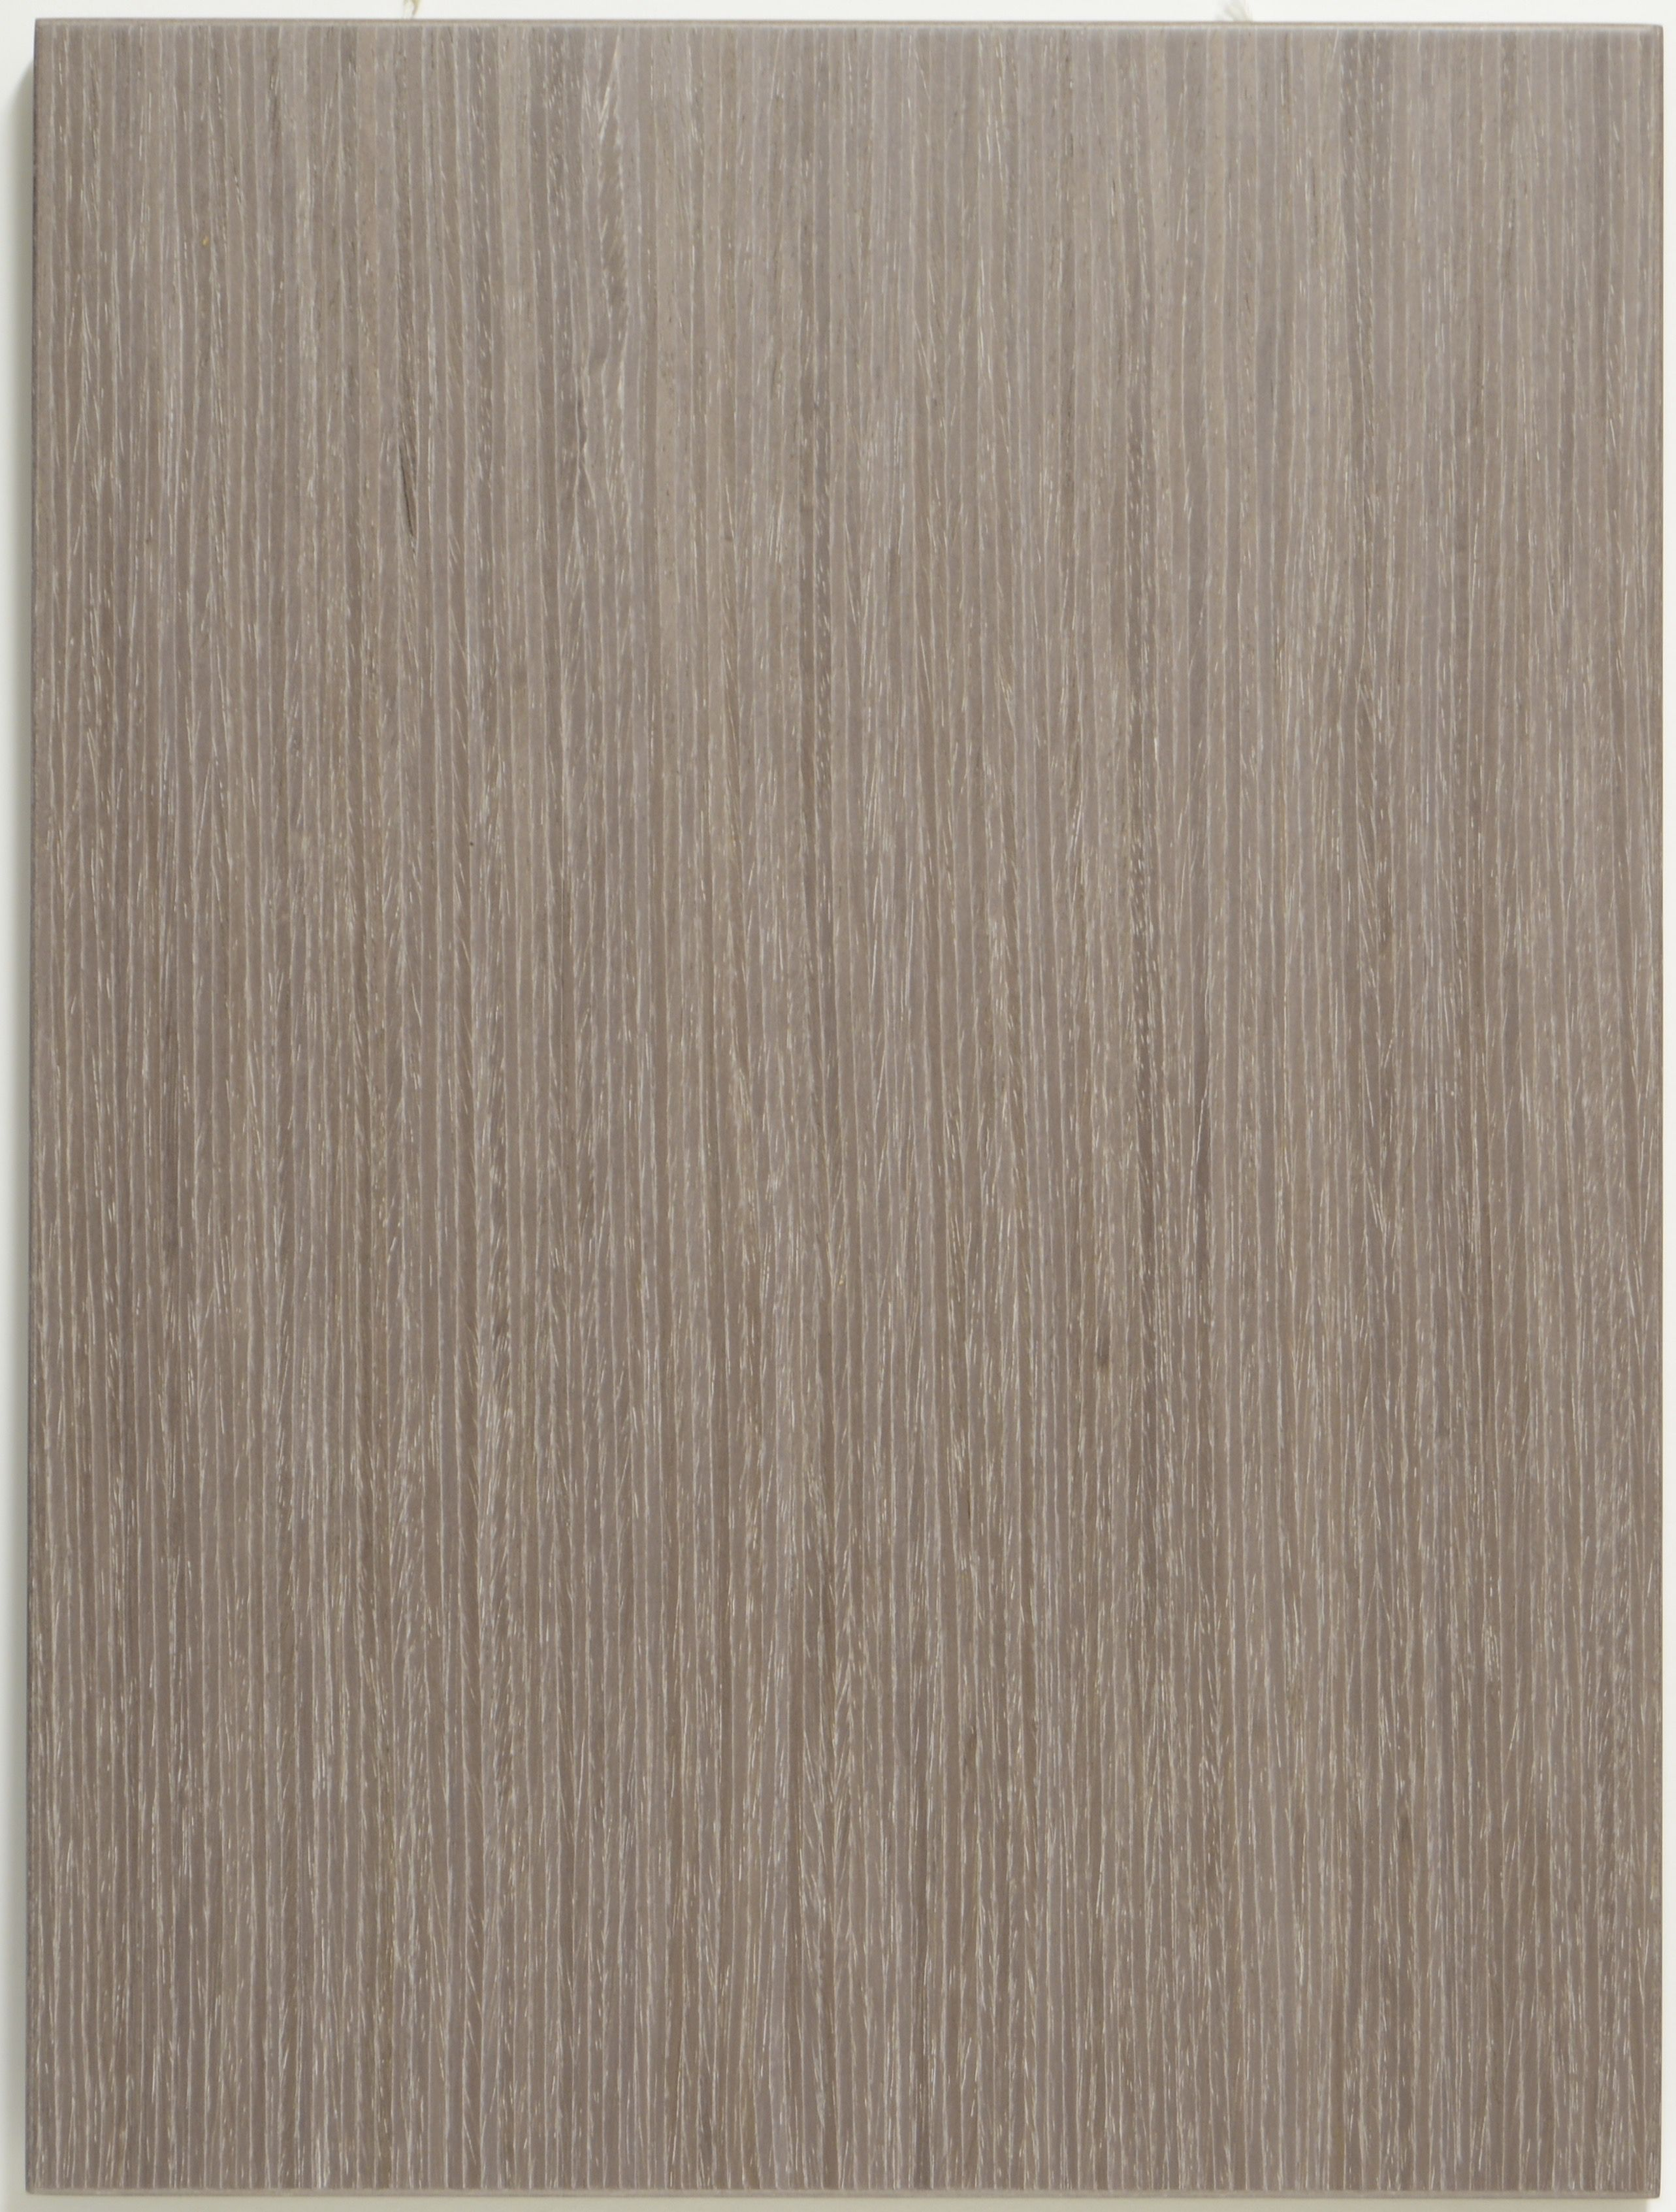 Slab kitchen cabinets  Oak Slab Kitchen Cabinet Doors  Want additional info Click on the